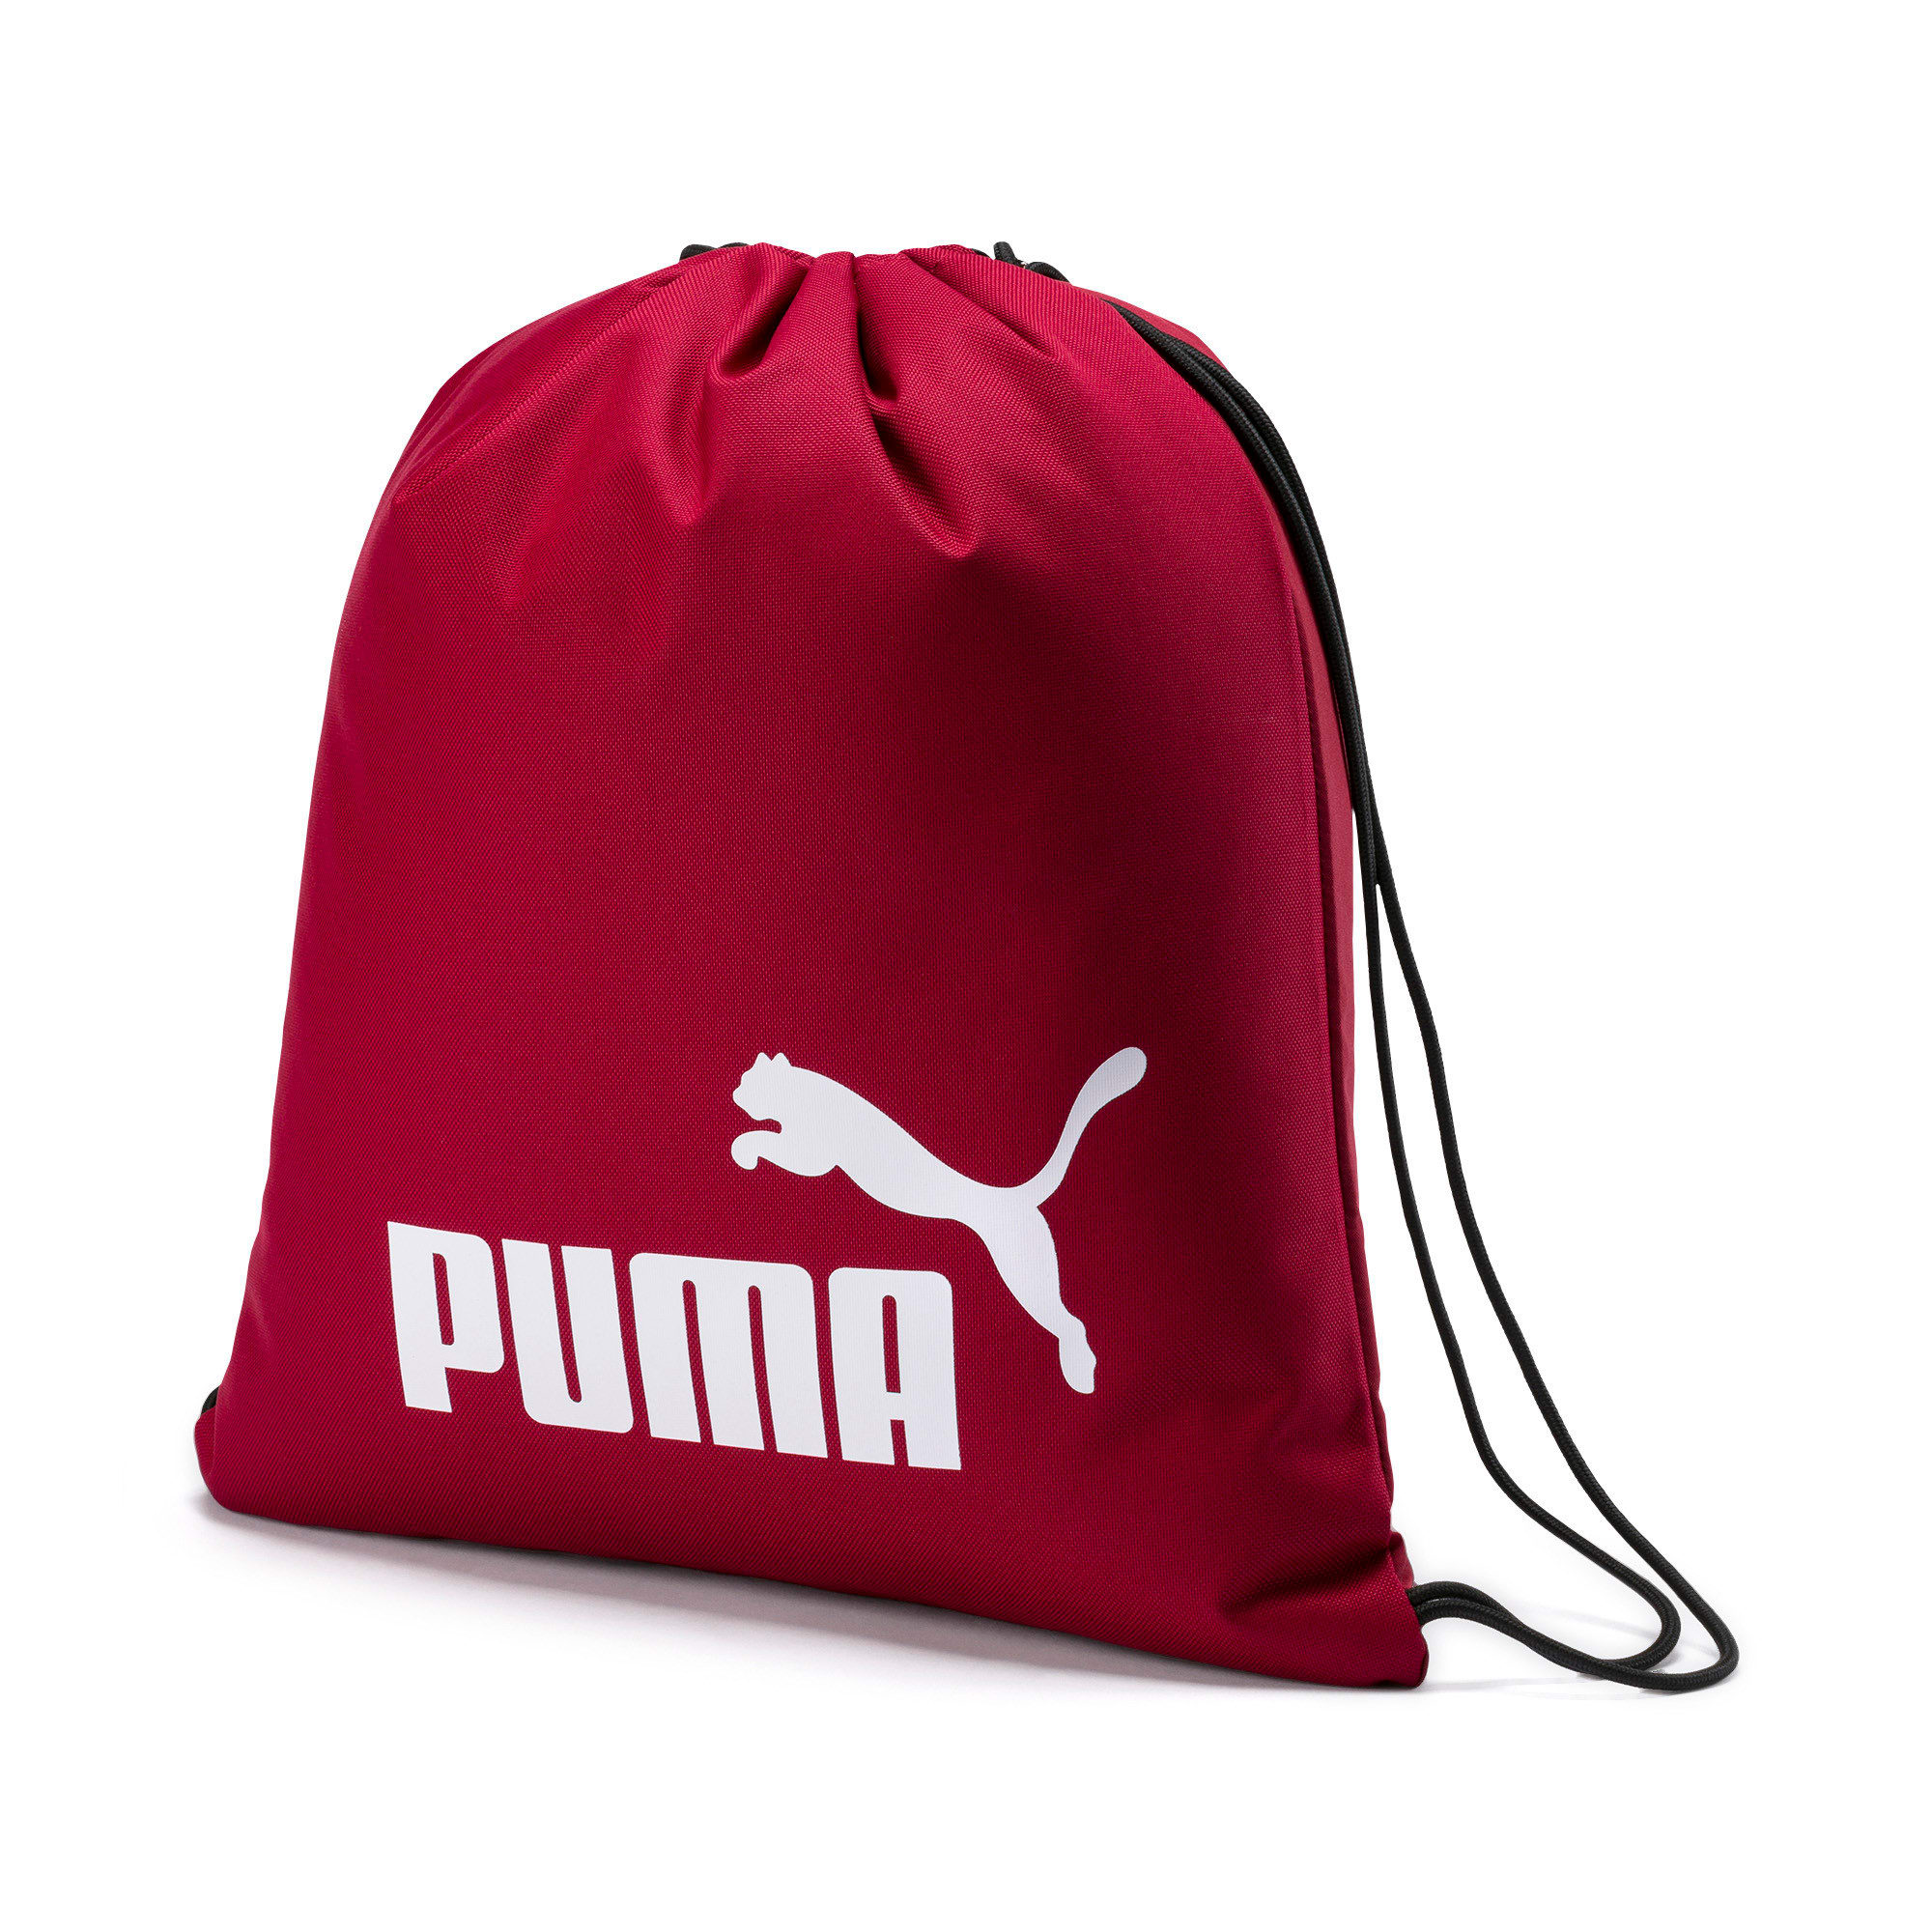 Thumbnail 1 of Phase Gym Bag, Rhubarb, medium